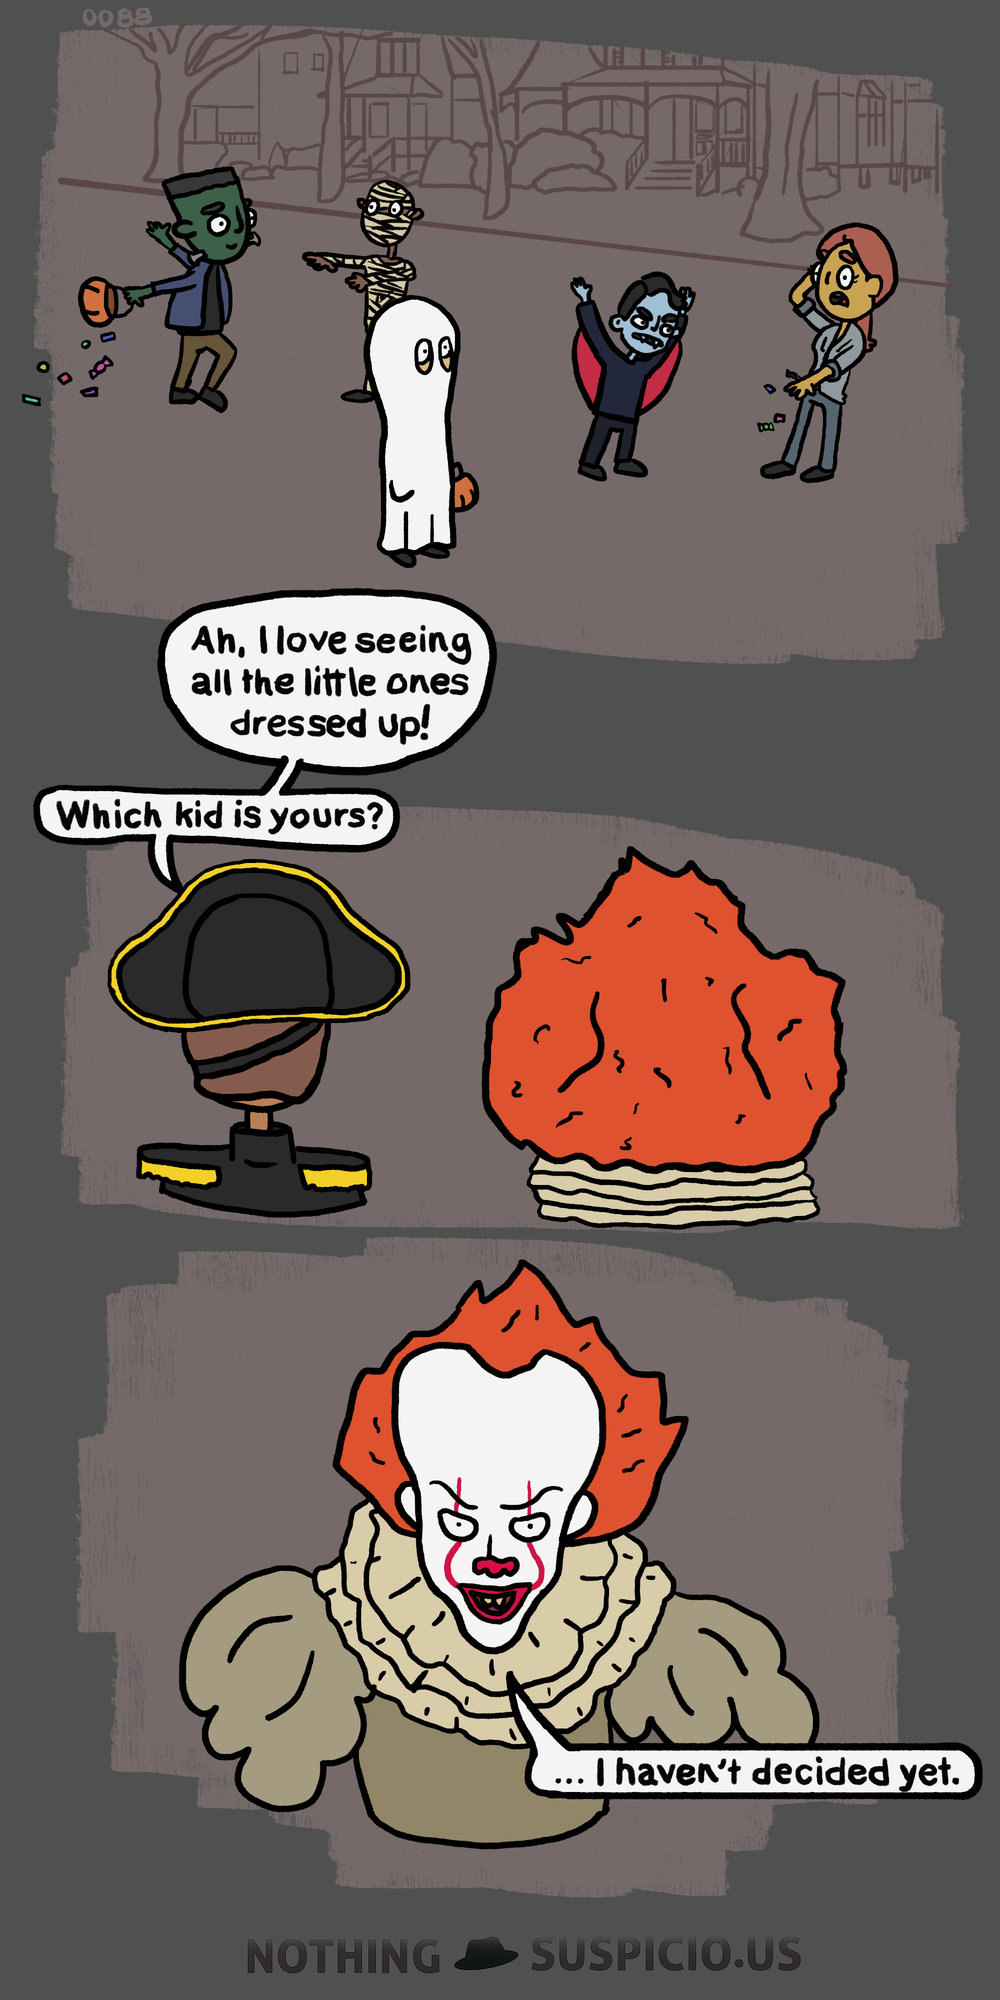 0088 - Trick or Treat.jpg